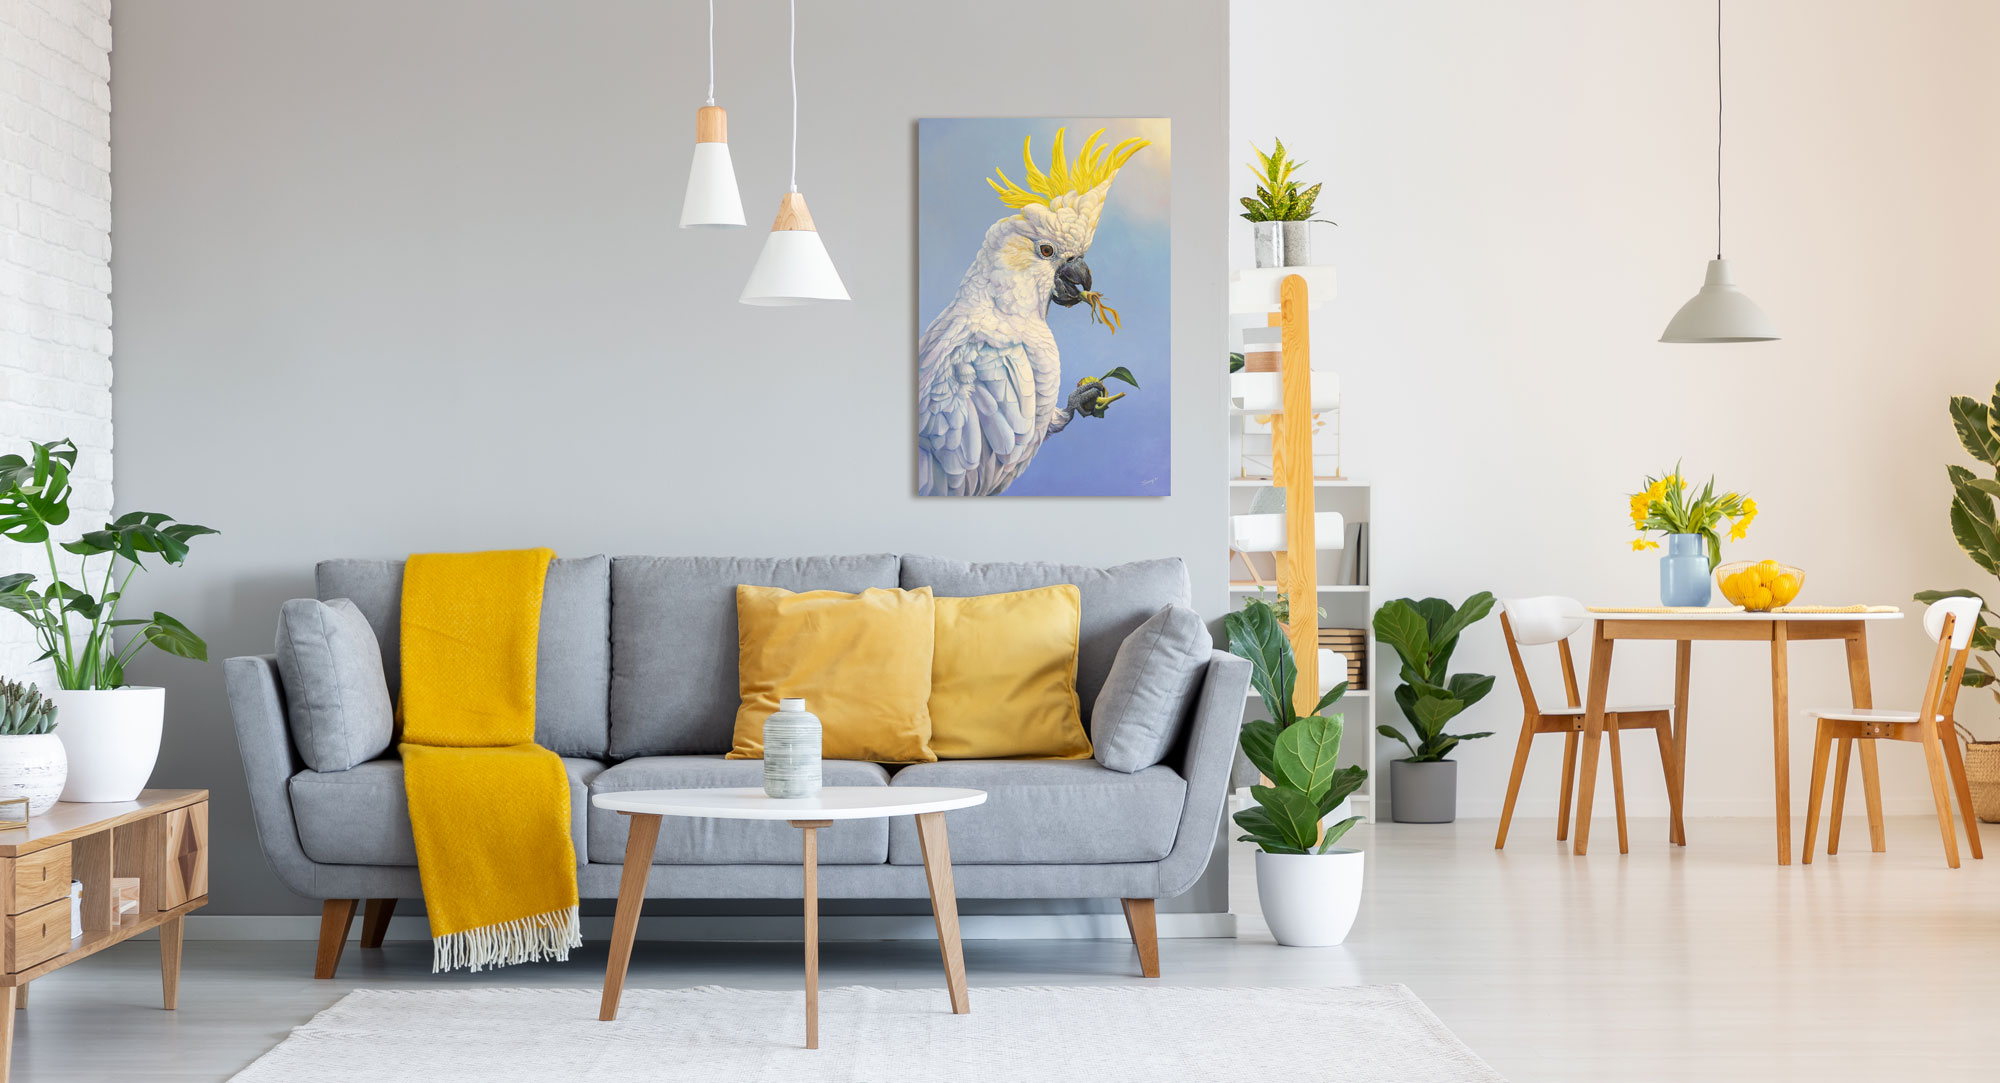 """""""The Sunflower Thief"""" - oil painting by Swapnil Nevgi of Sulphur crested cockatoo shown in home setting"""